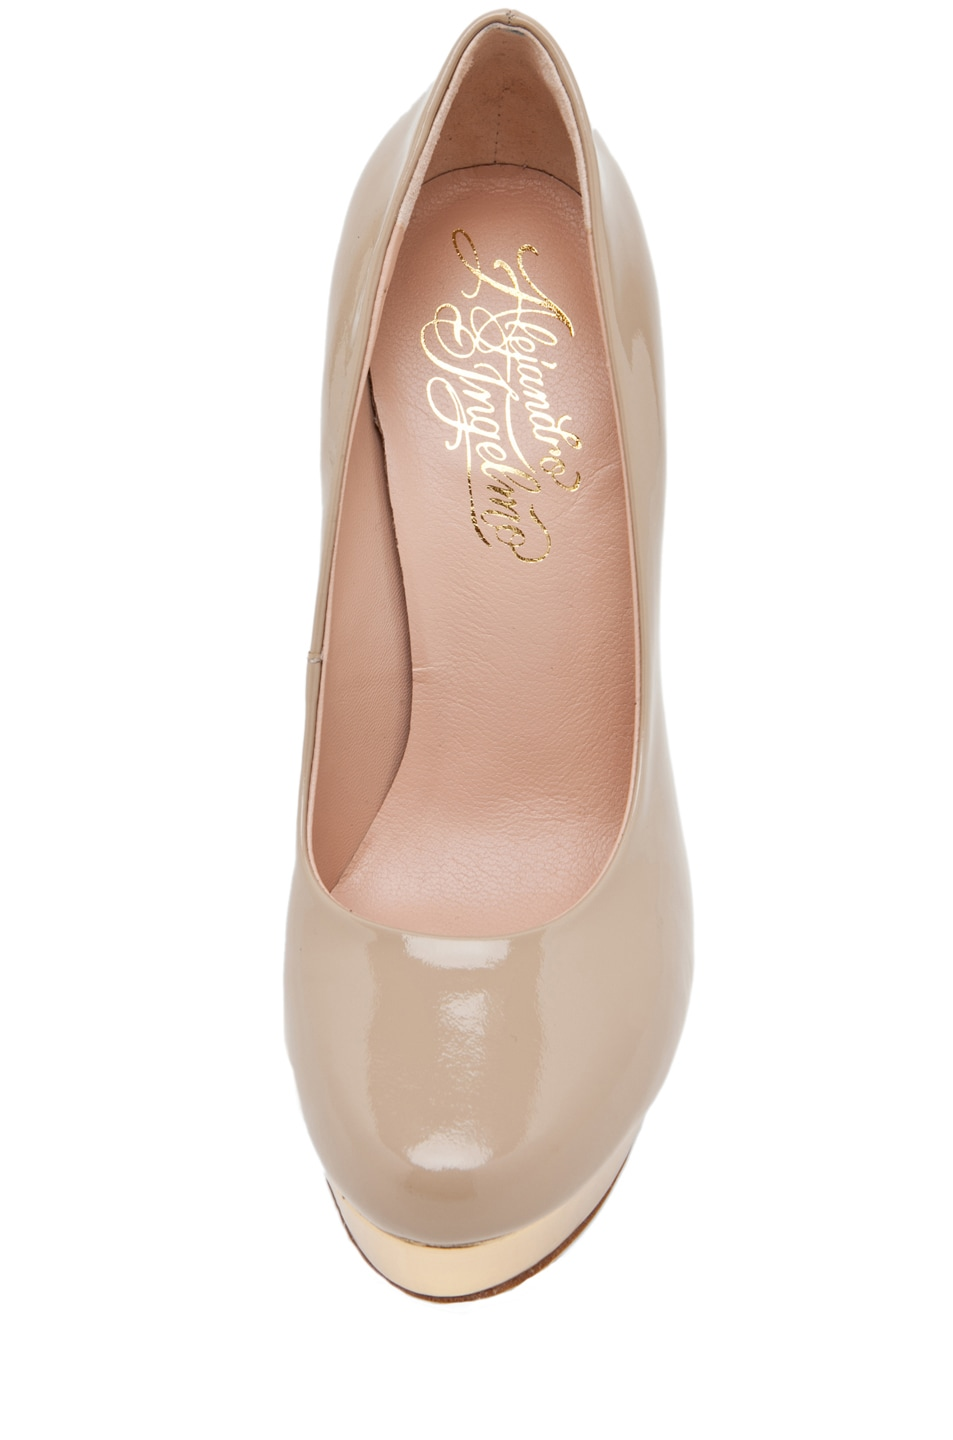 Image 4 of Alejandro Ingelmo Sophia Pump in Sand/Gold